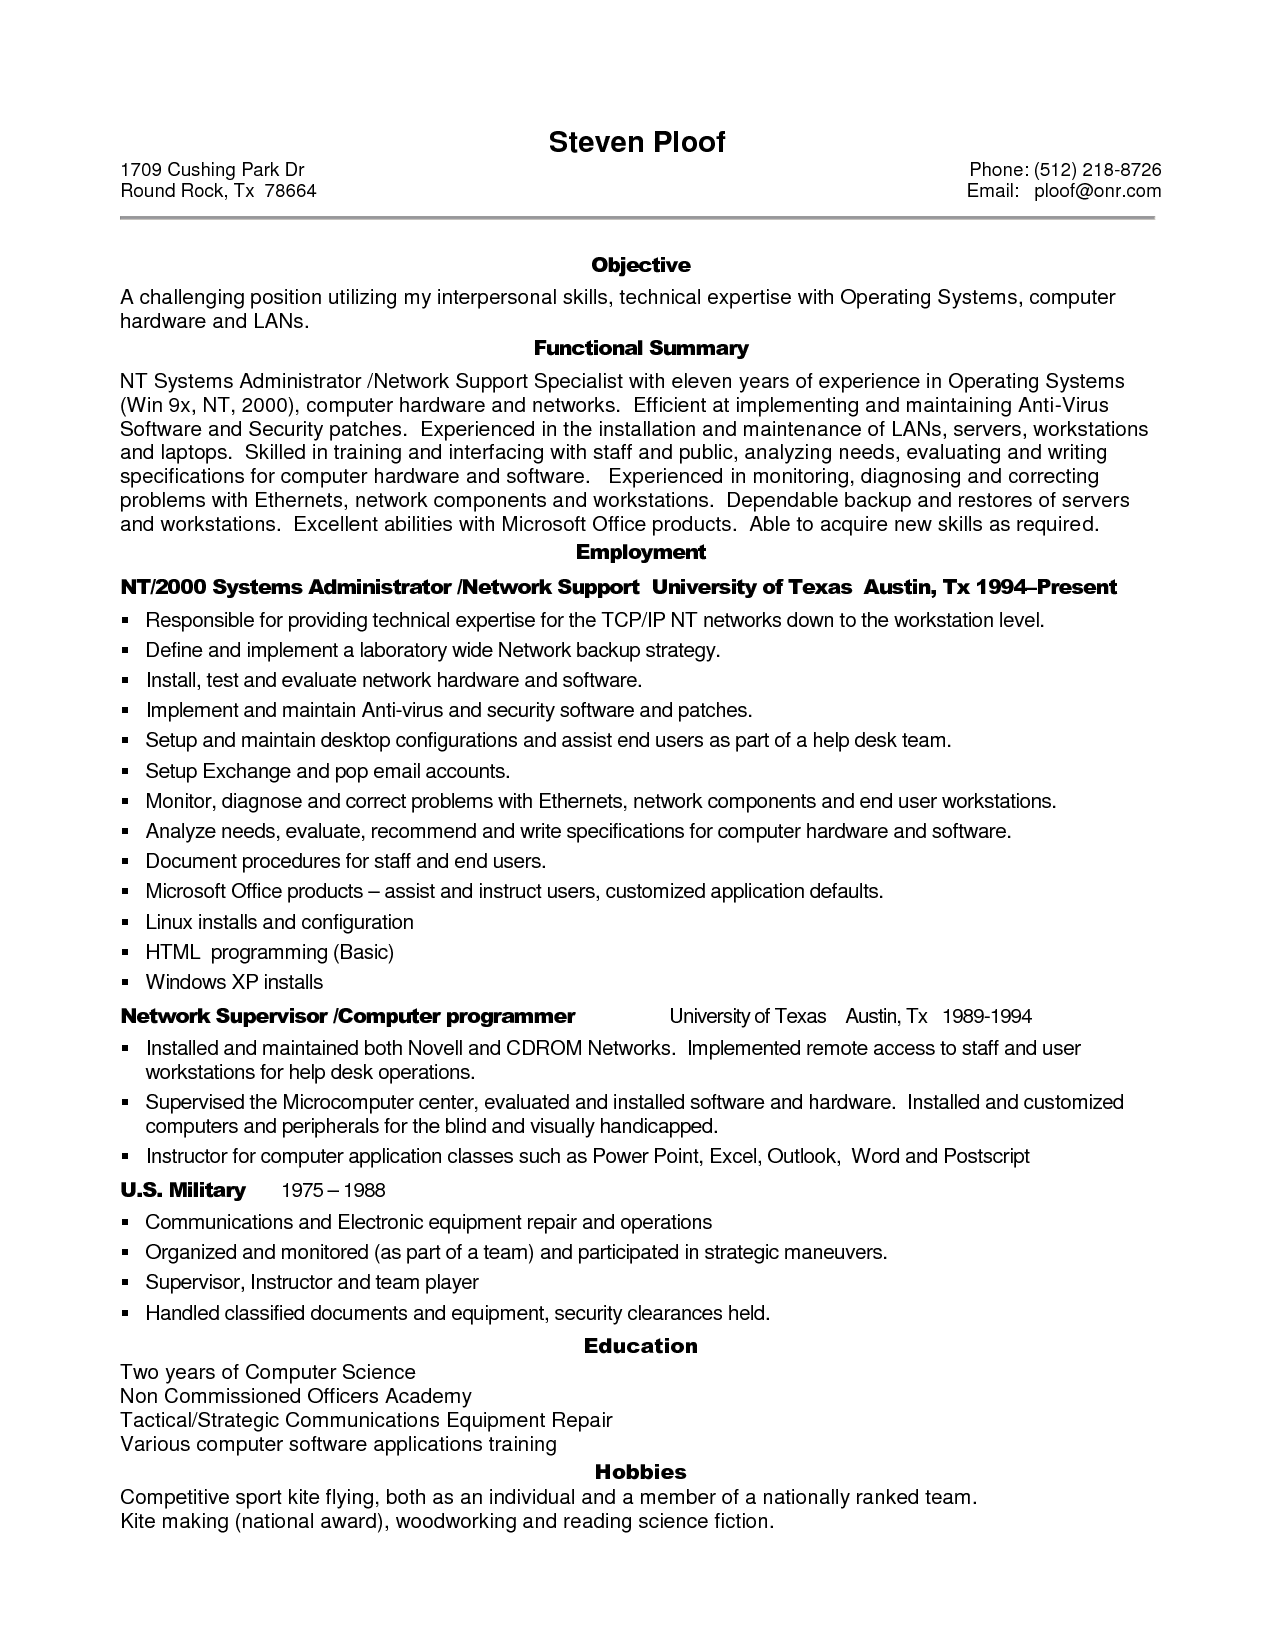 Resume 4 Years Experience Resume Format sample resume for experienced it professional tips for